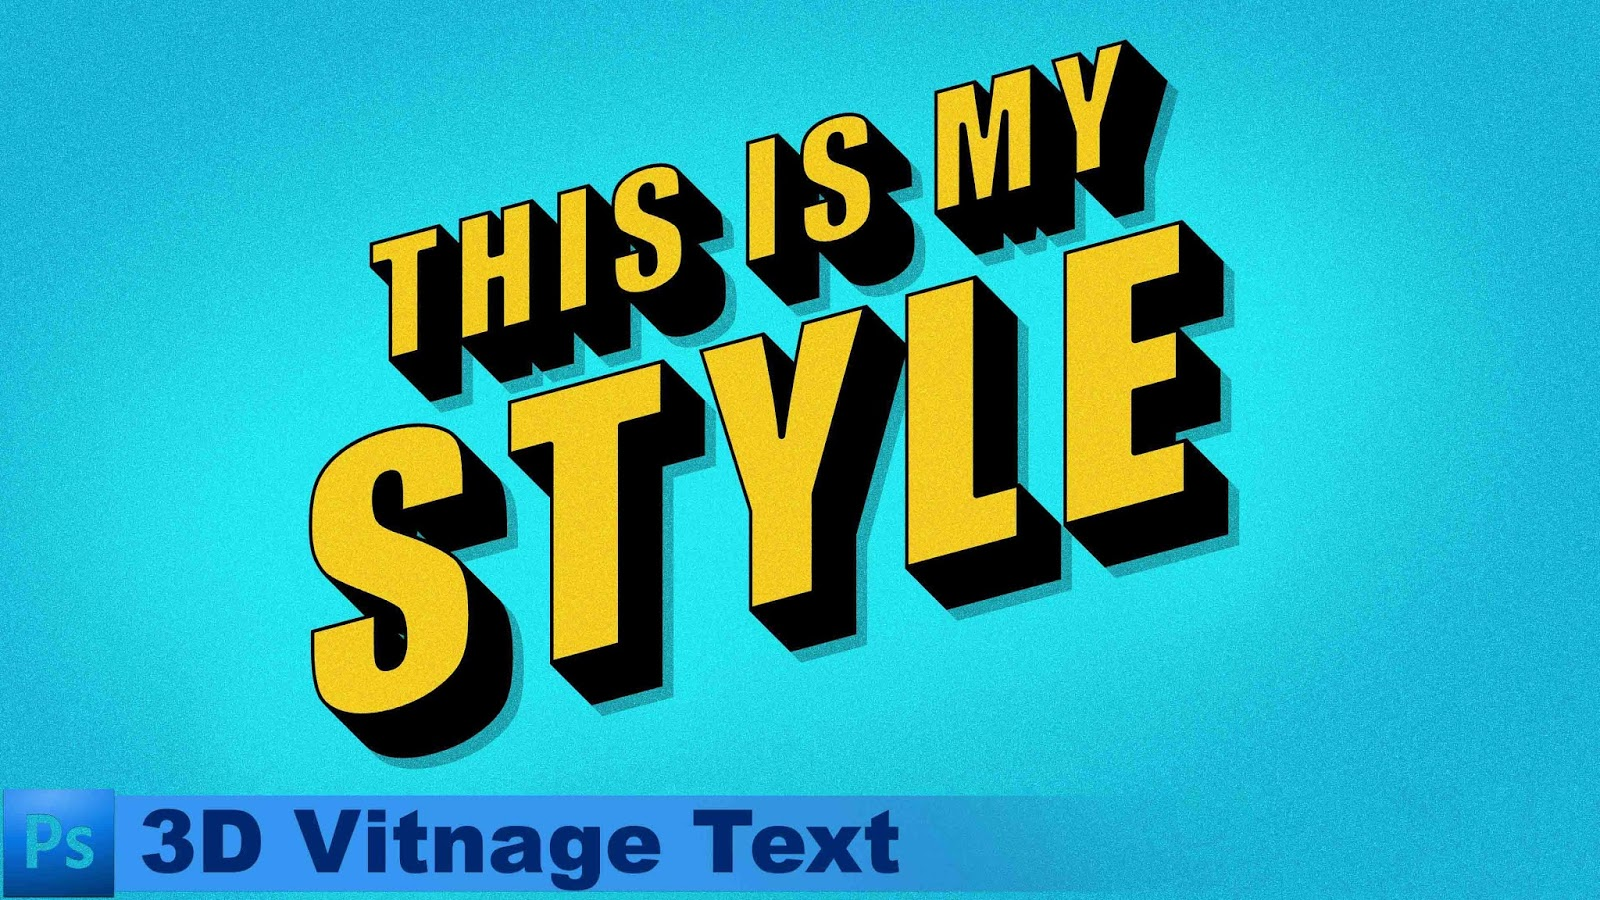 3d cinemas text effect in photoshop cc 2017 tutorial photoshop this is my style 3d text effect in photoshop cc 2017 tutorial photoshop funda baditri Gallery